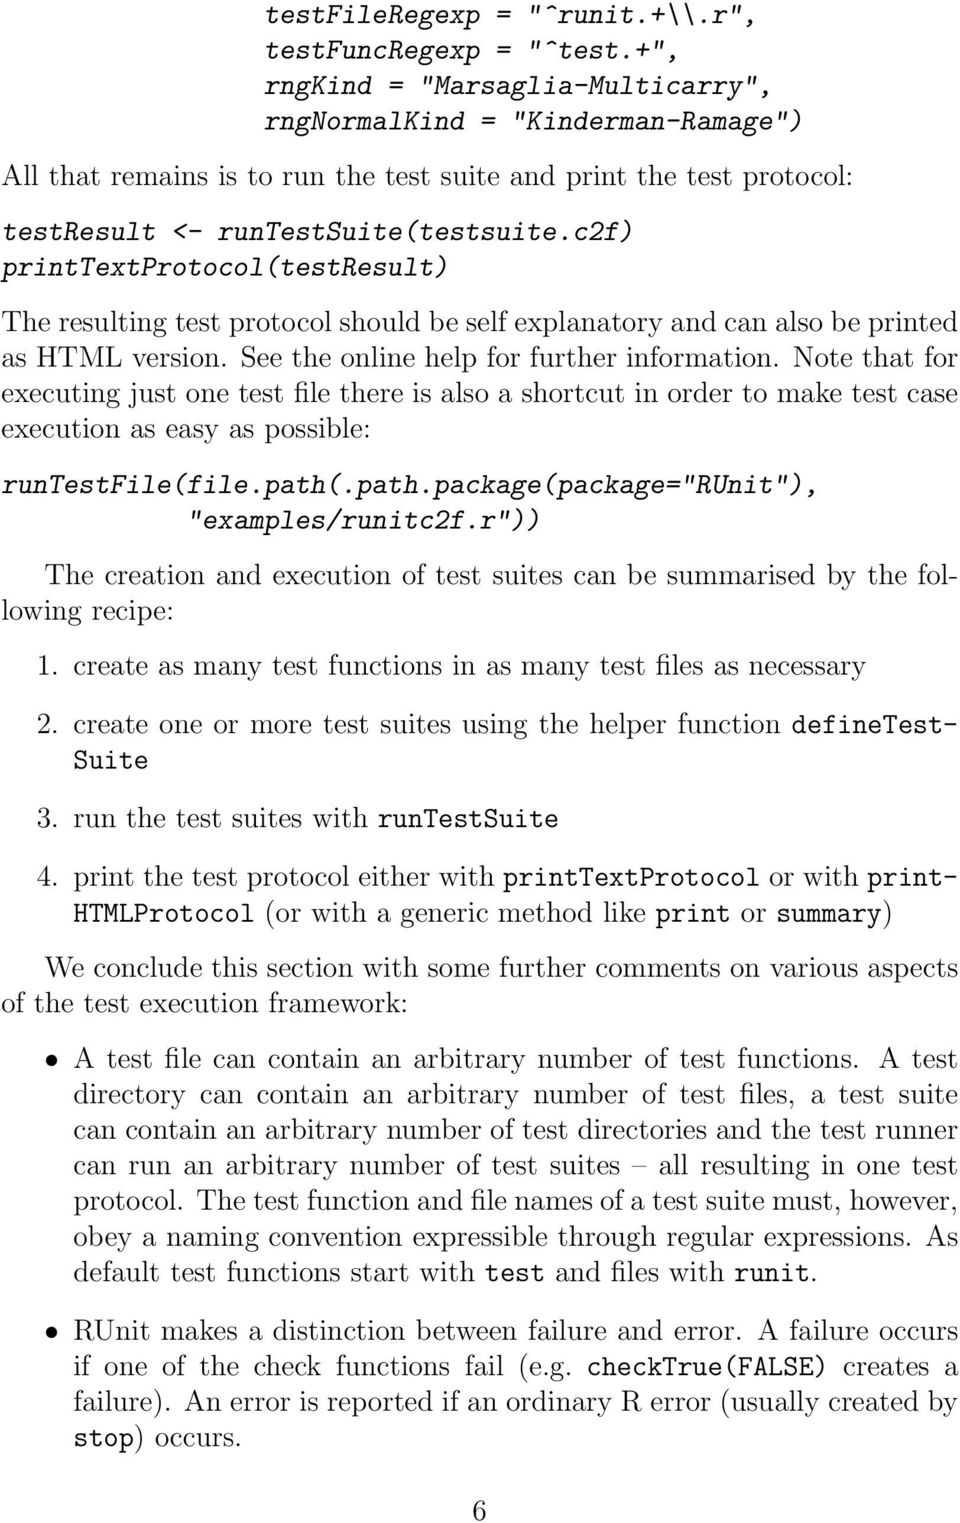 c2f) printtextprotocol(testresult) The resulting test protocol should be self explanatory and can also be printed as HTML version. See the online help for further information.